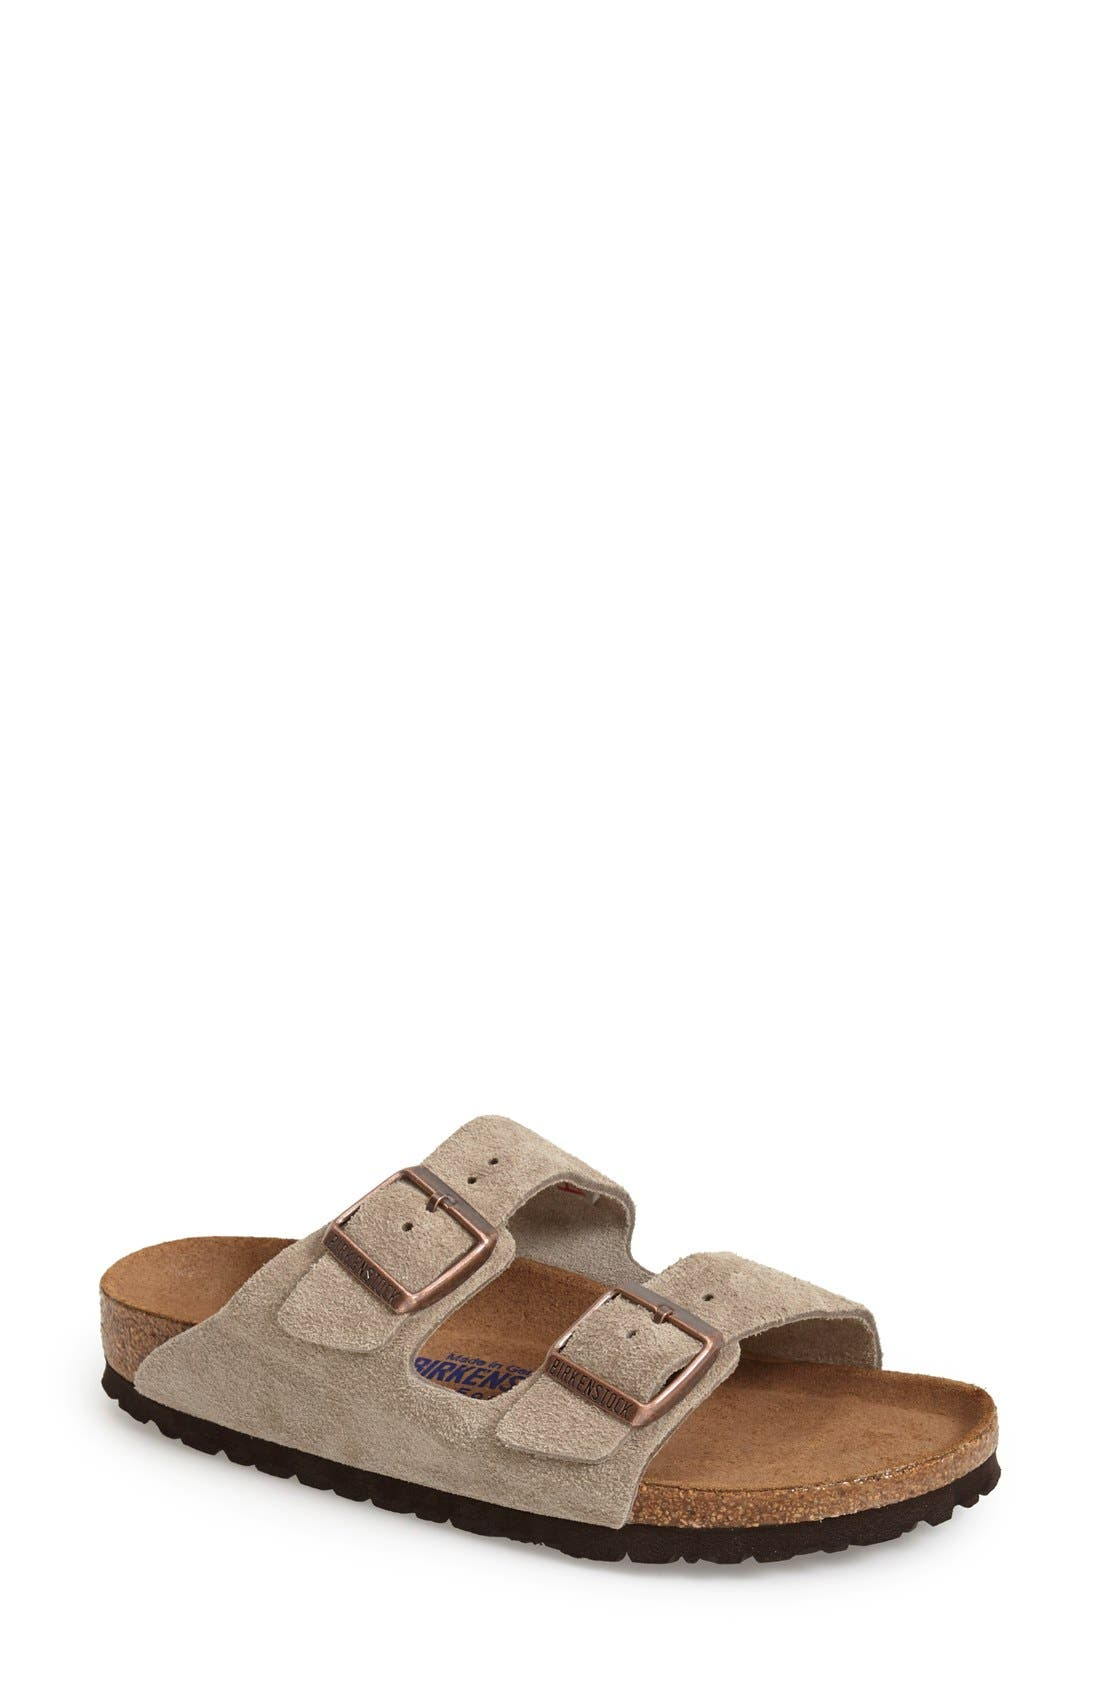 Alternate Image 1 Selected - Birkenstock 'Arizona' Soft Footbed Suede Sandal (Women)